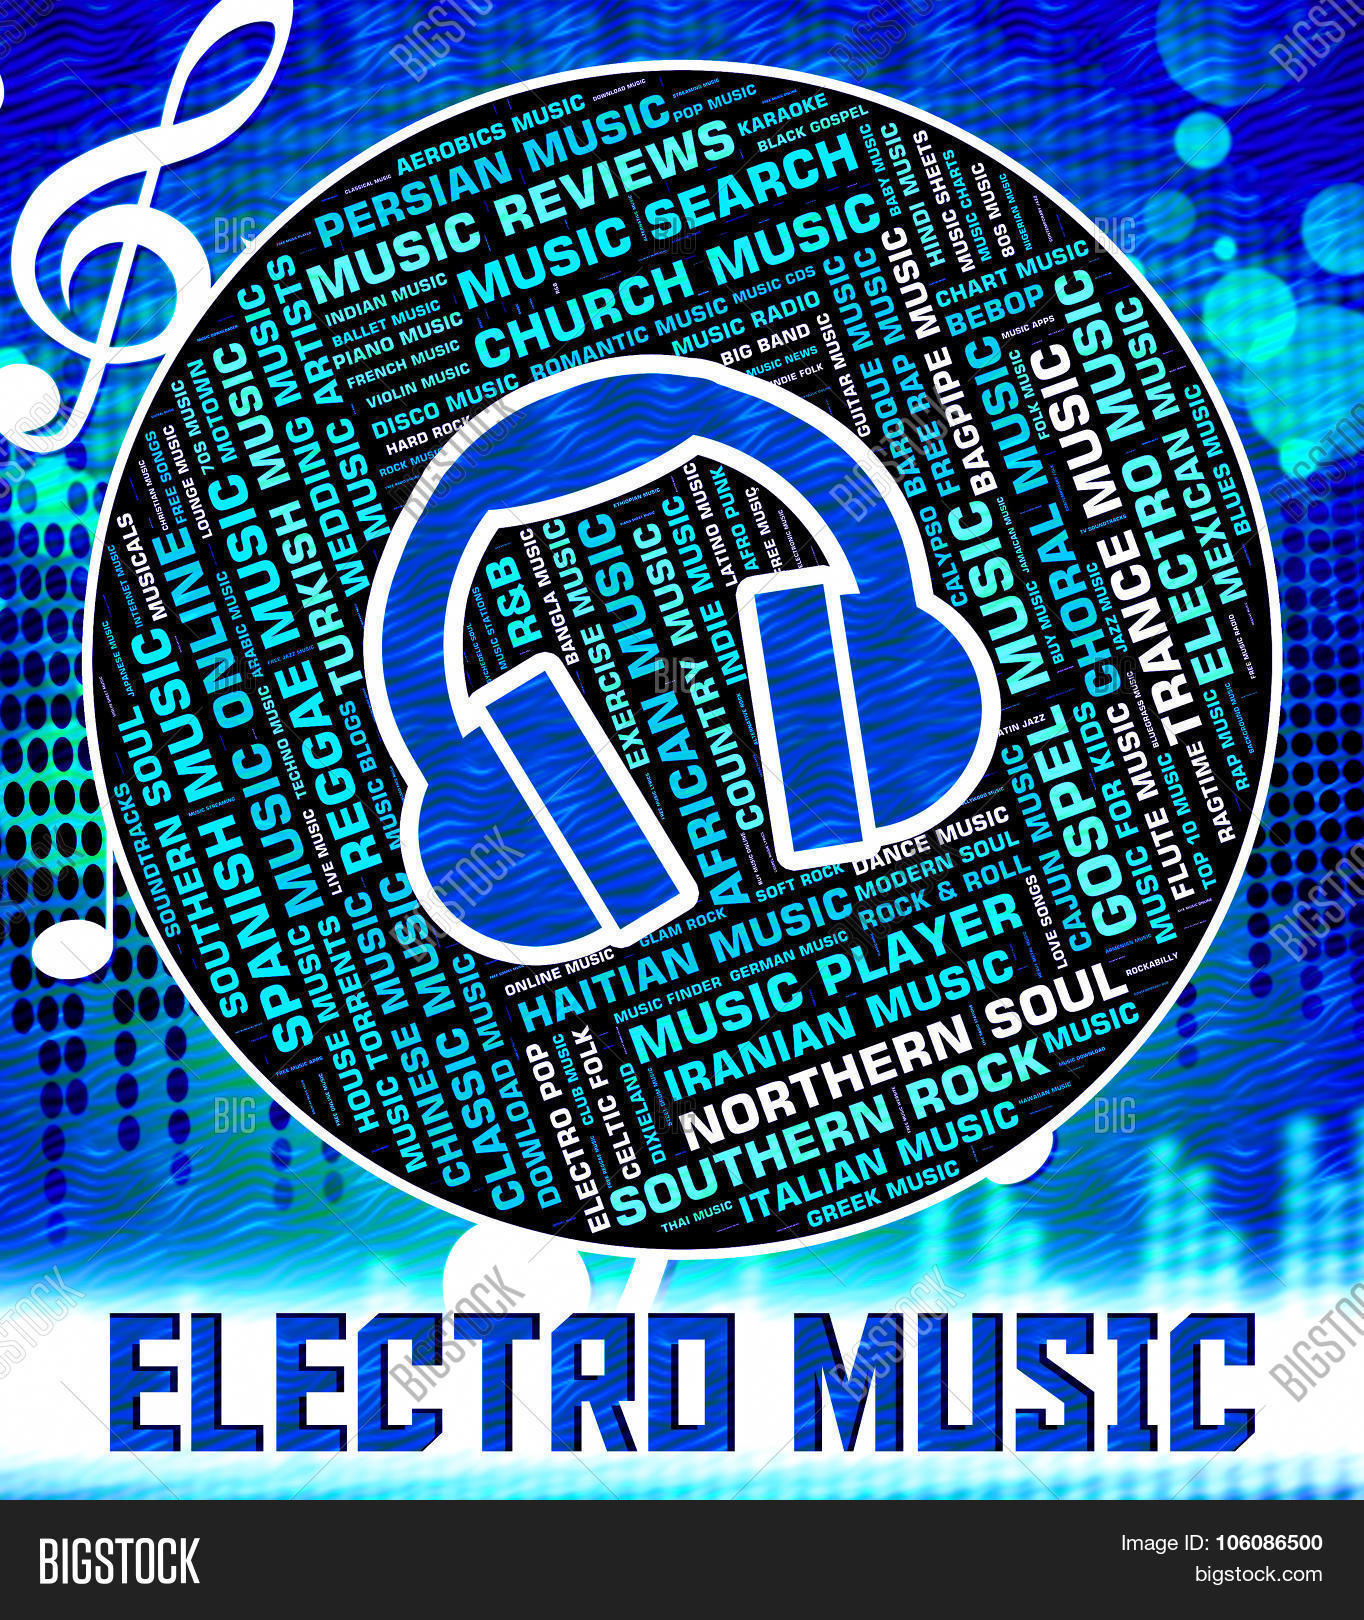 Electro Music Shows Image & Photo (Free Trial) | Bigstock